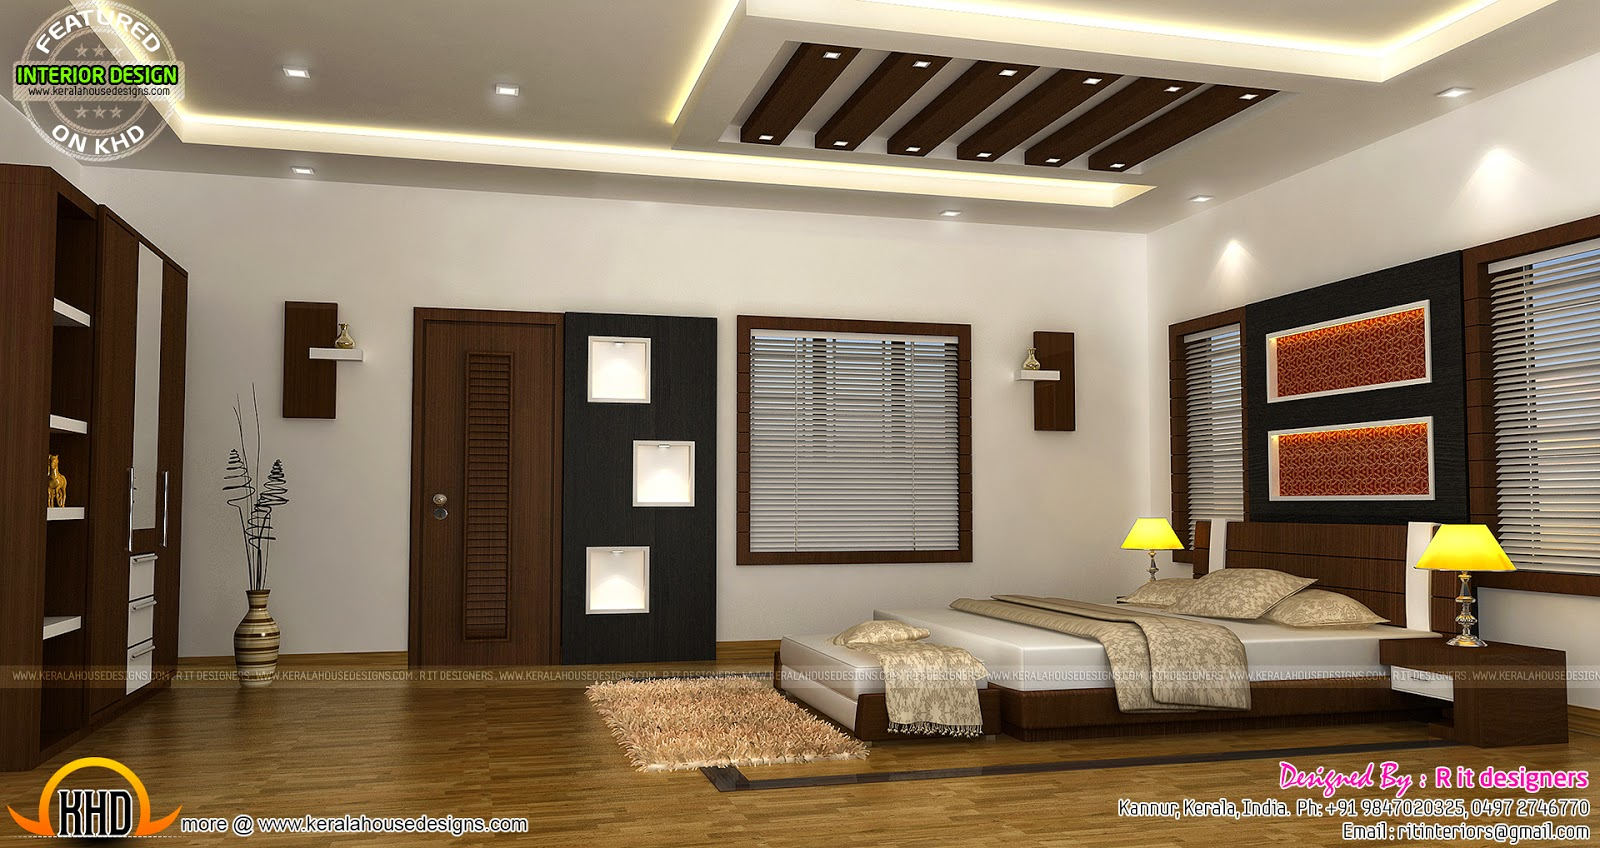 Bedroom interior design with cost kerala home design and floor plans Interior design ideas for selling houses